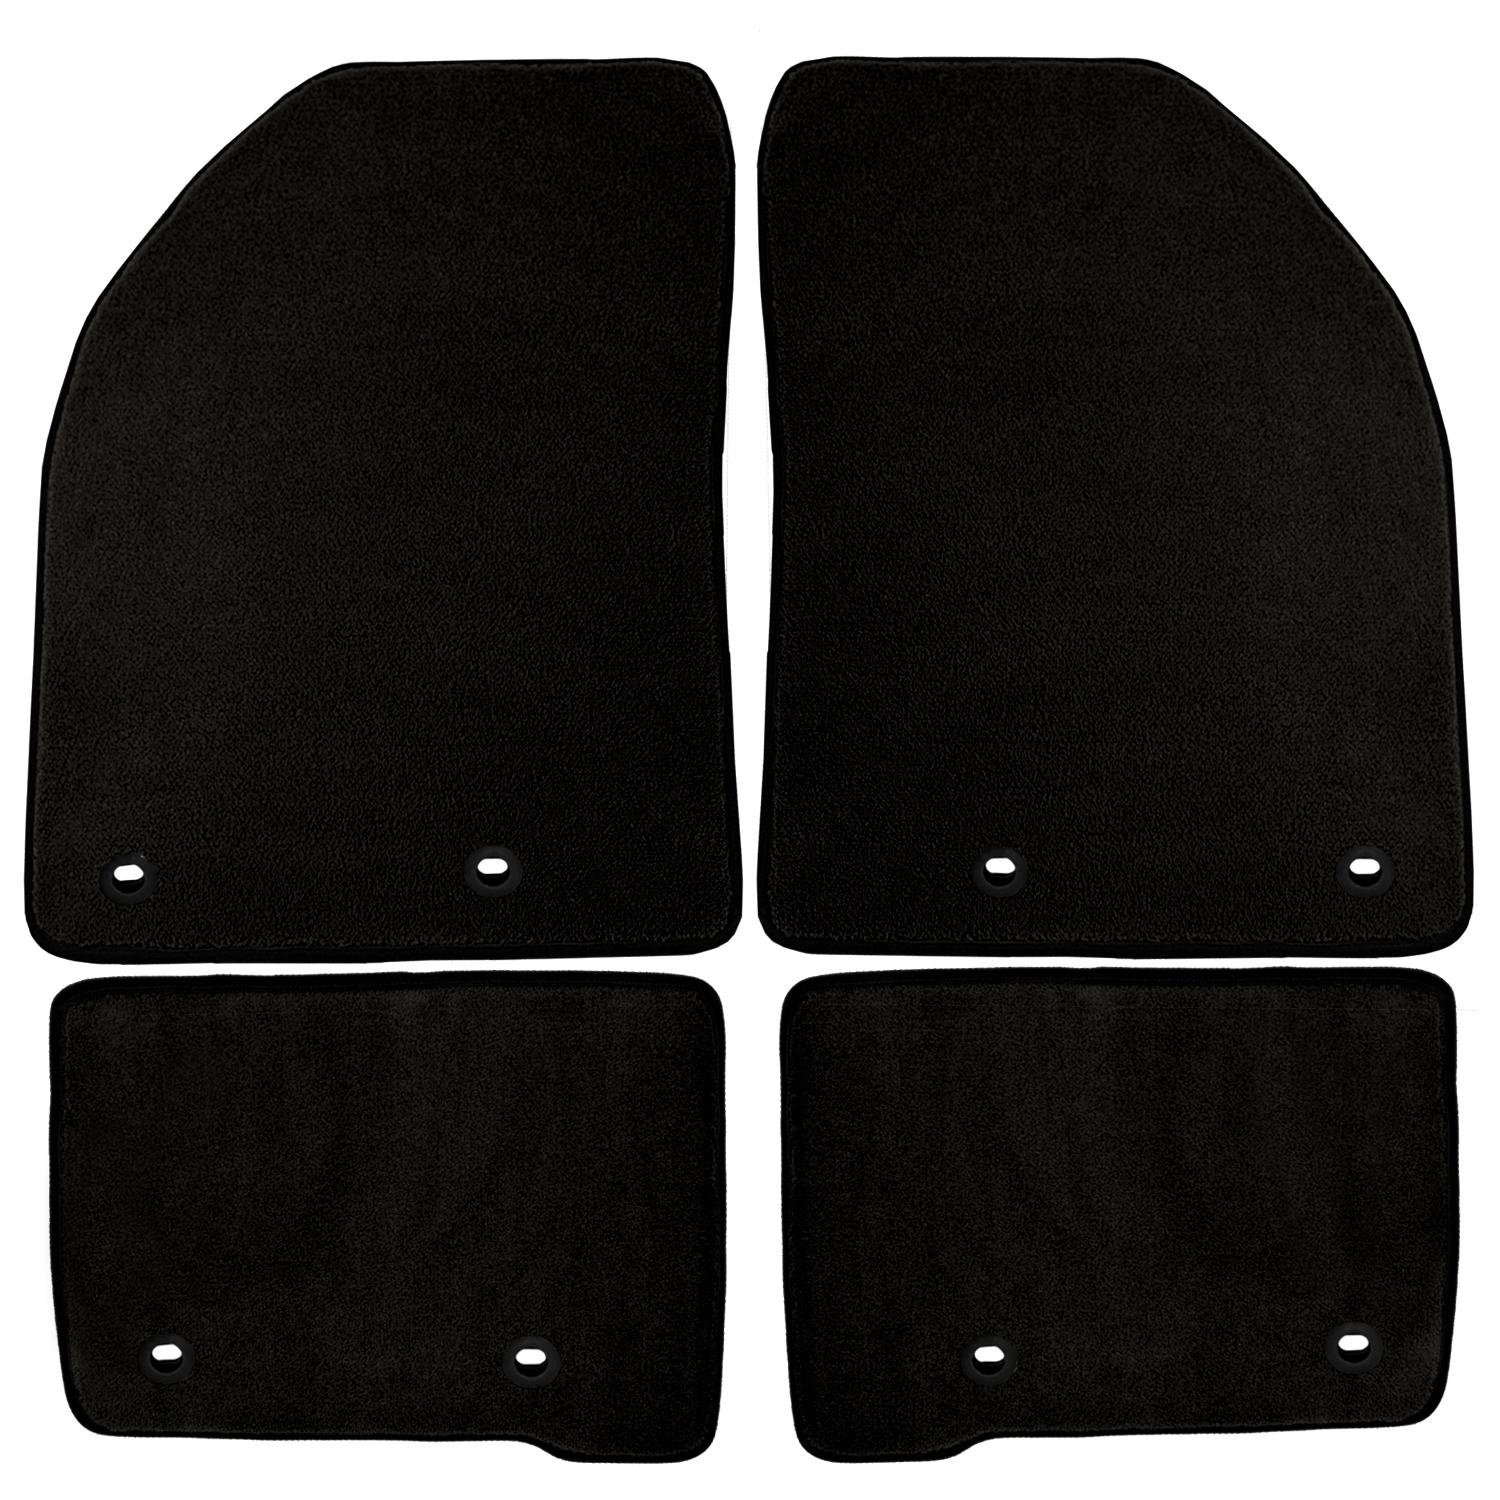 Black Nylon Carpet Coverking Custom Fit Front Floor Mats for Select Subaru Models